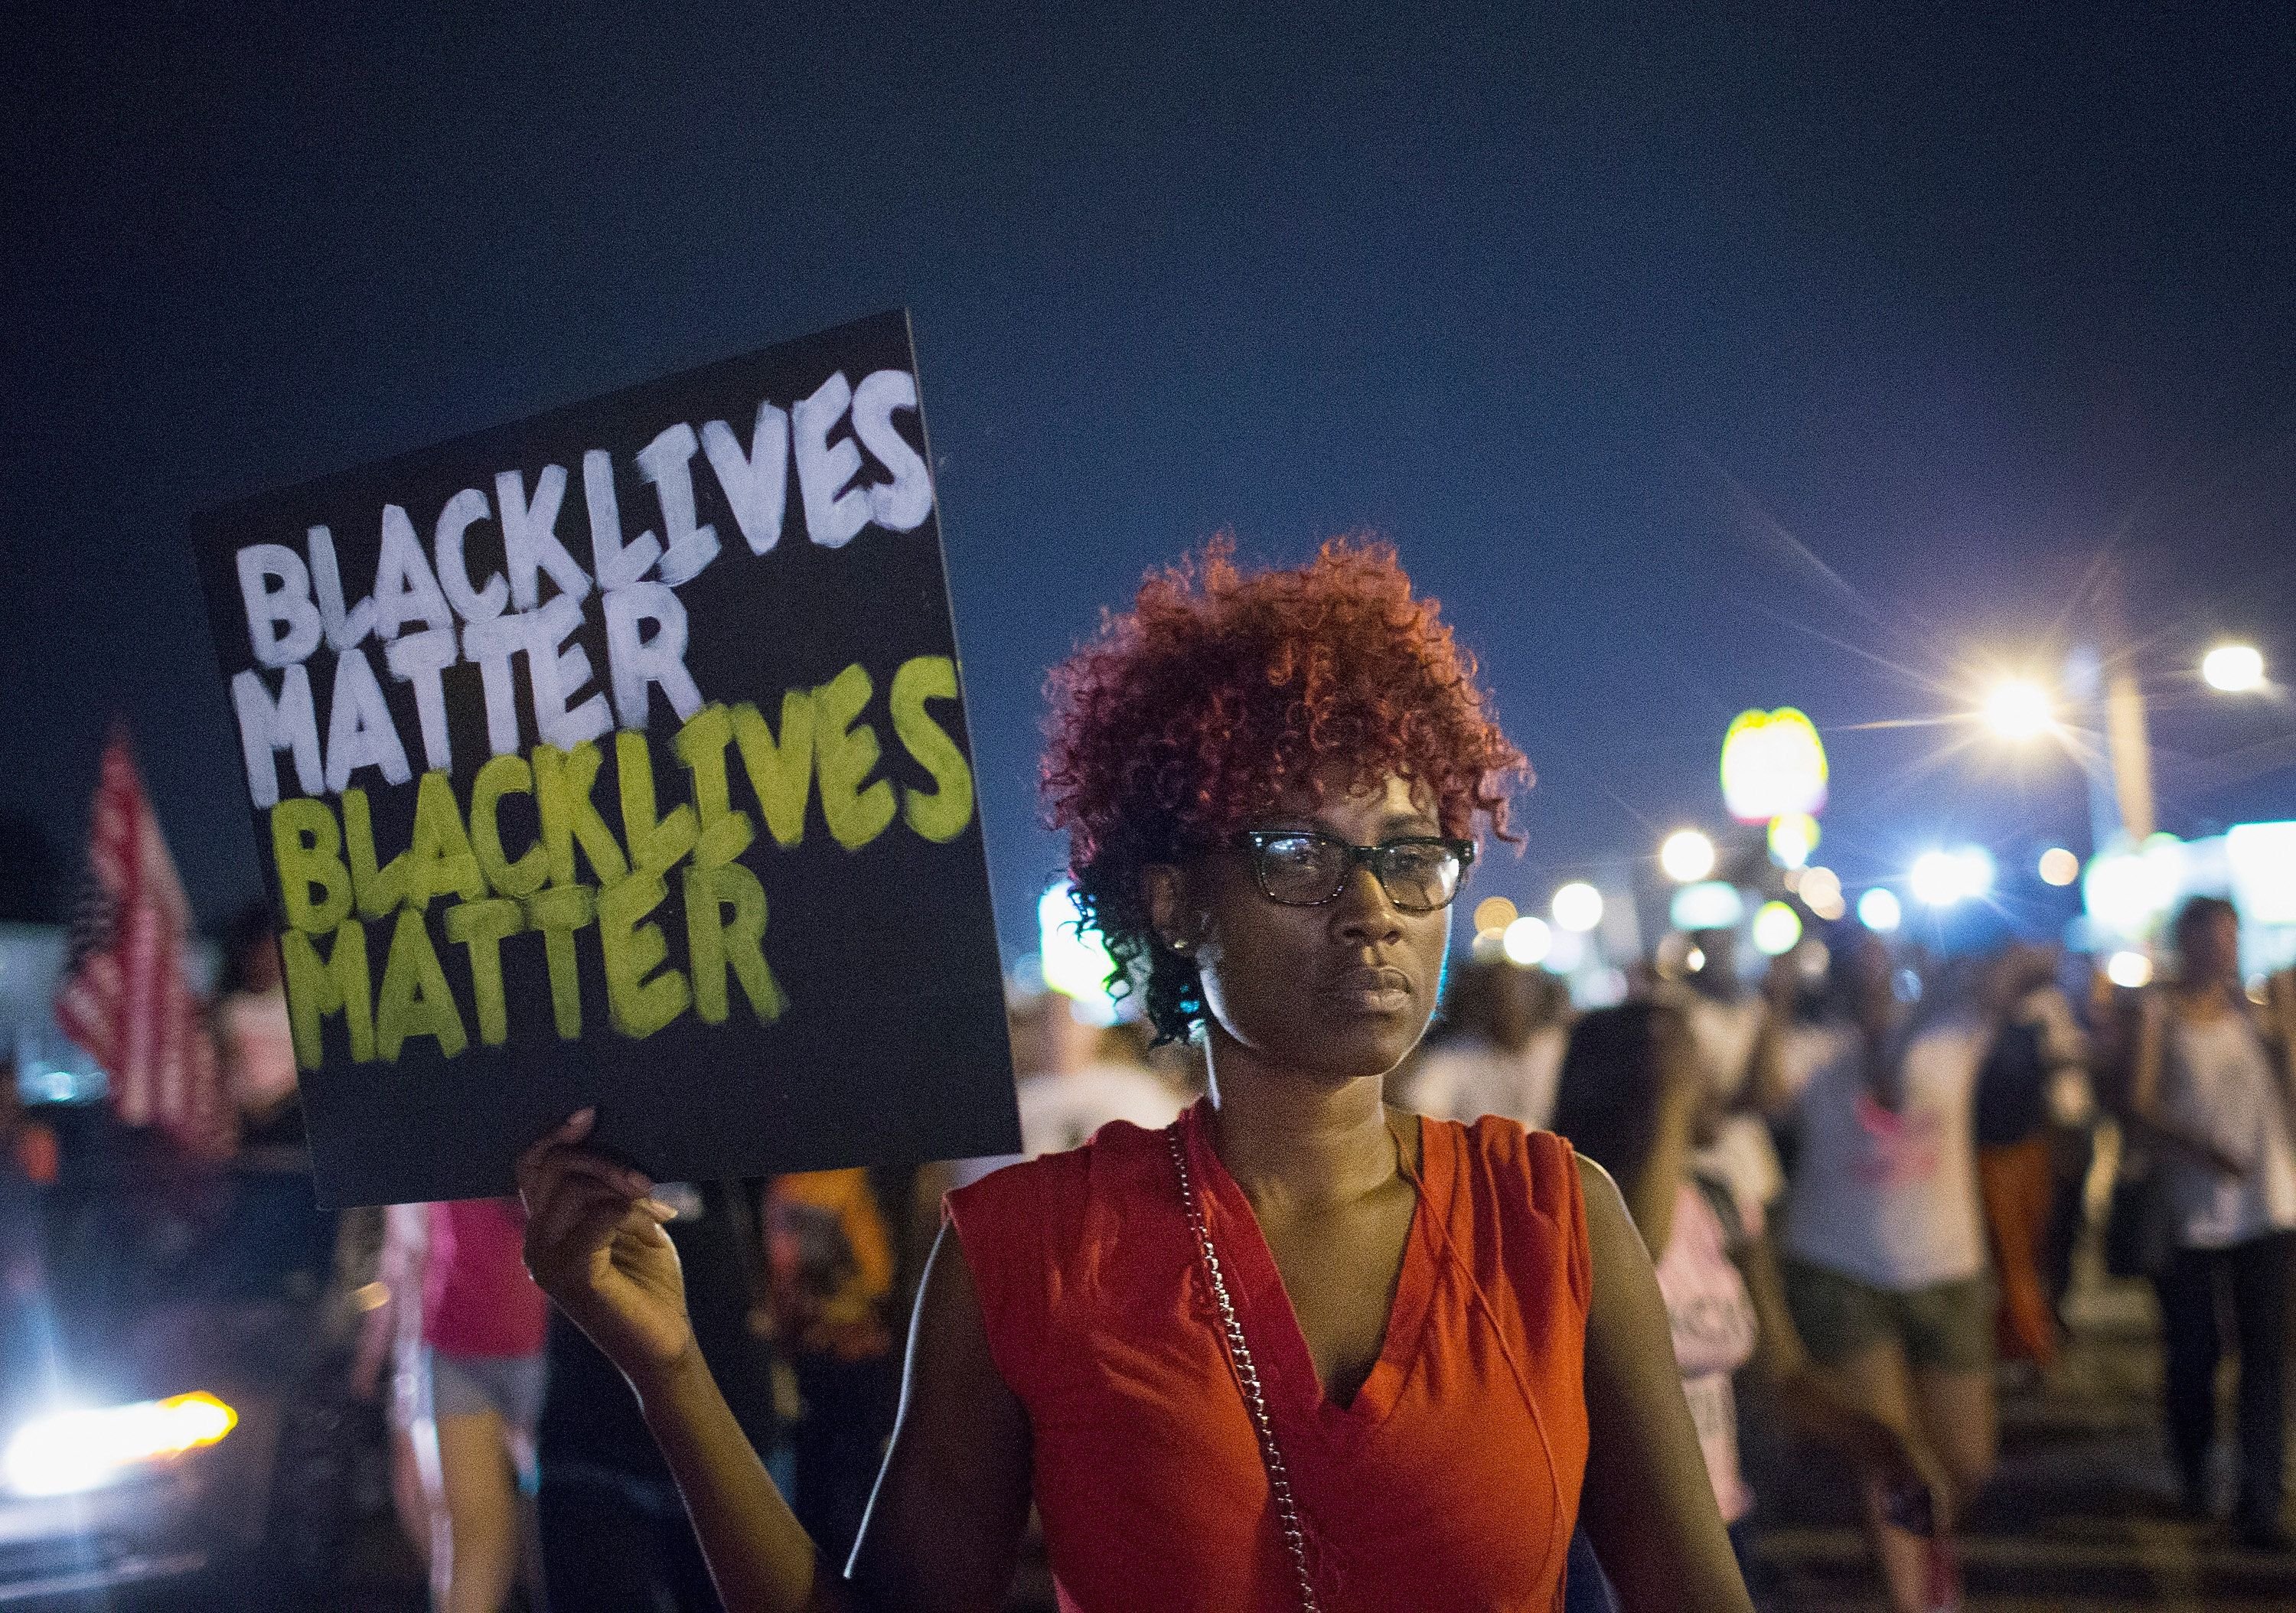 An FBI document said it was concerned about protests that followed the 2014 killing of Michael Brown in Ferguson, Missou